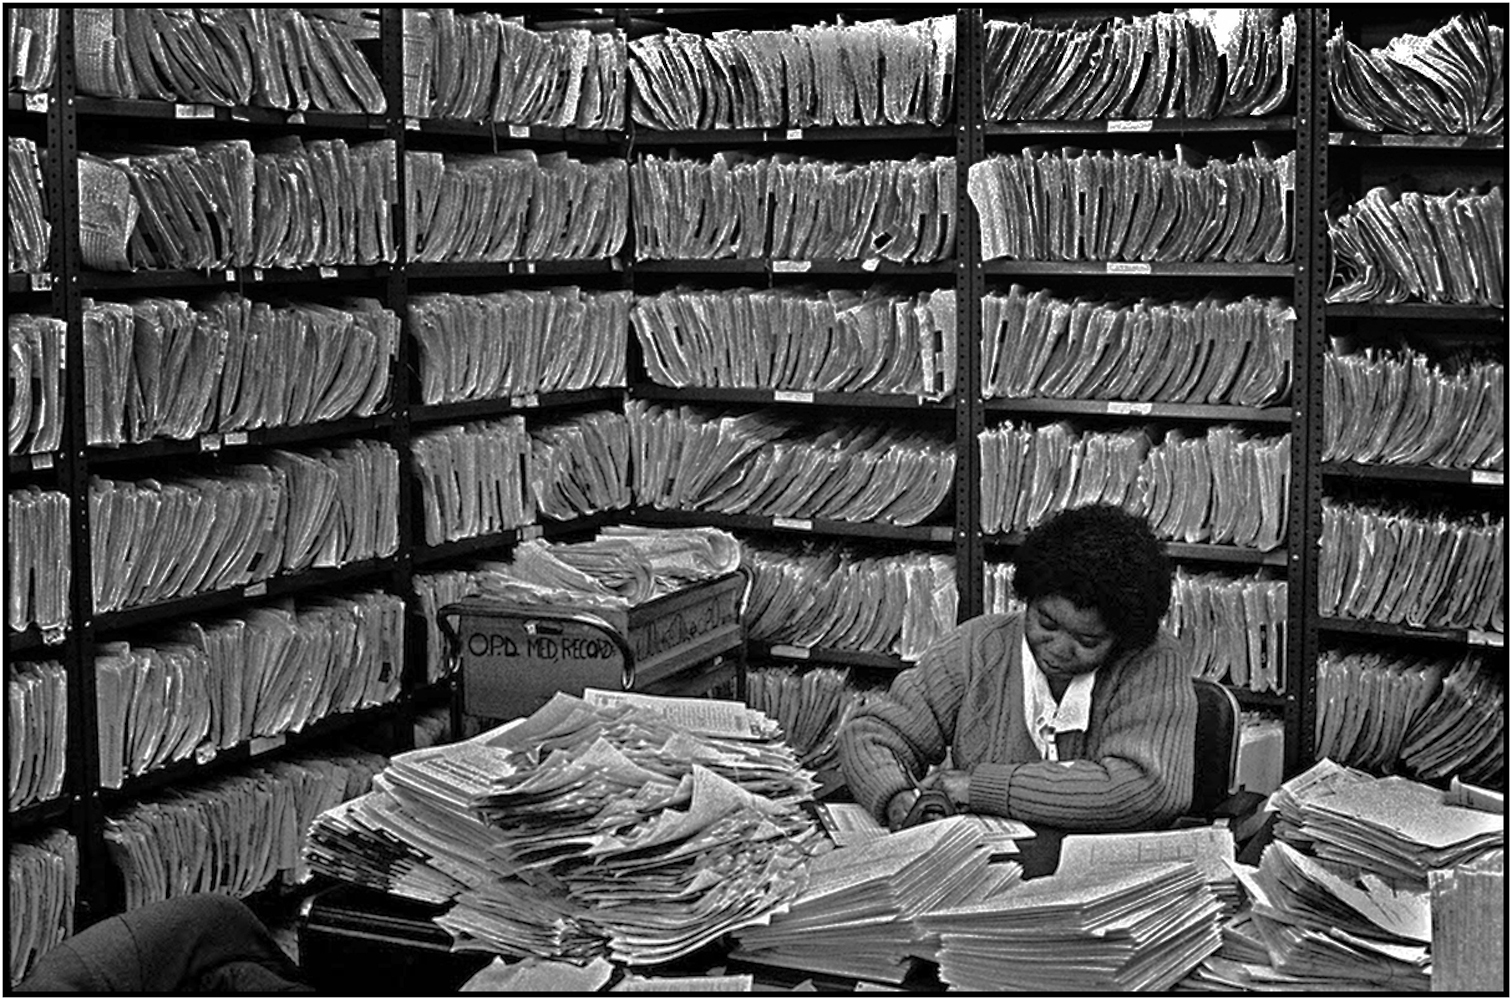 Sandra Winslow works with emergency medical charts at Kings County Hospital, Brooklyn.1988.